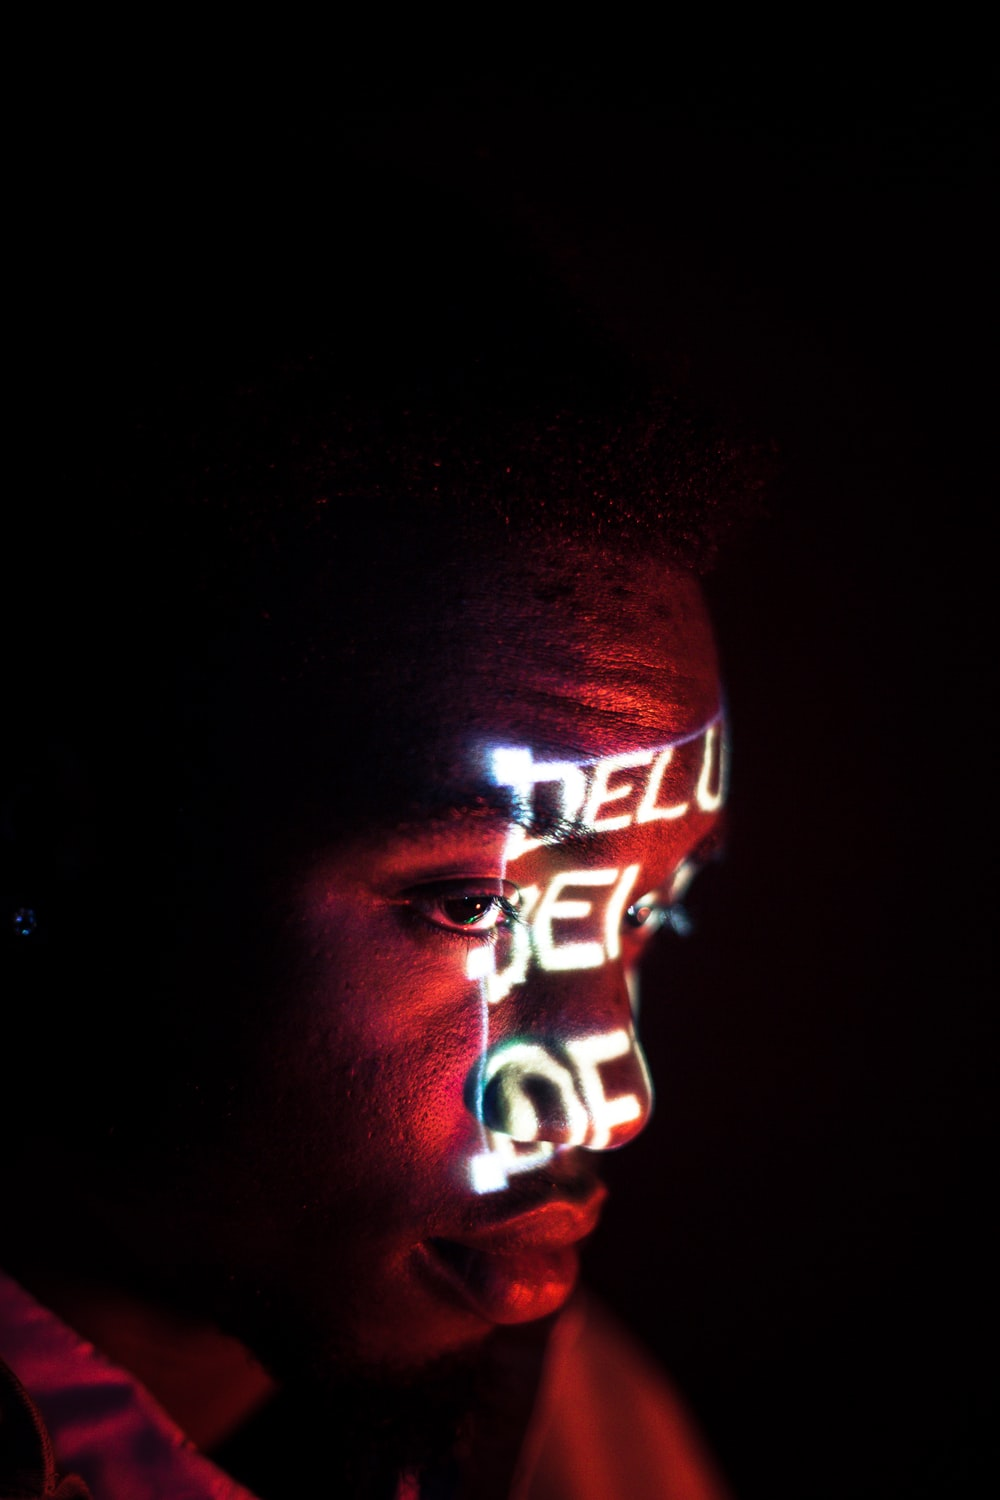 man with red and white light on face